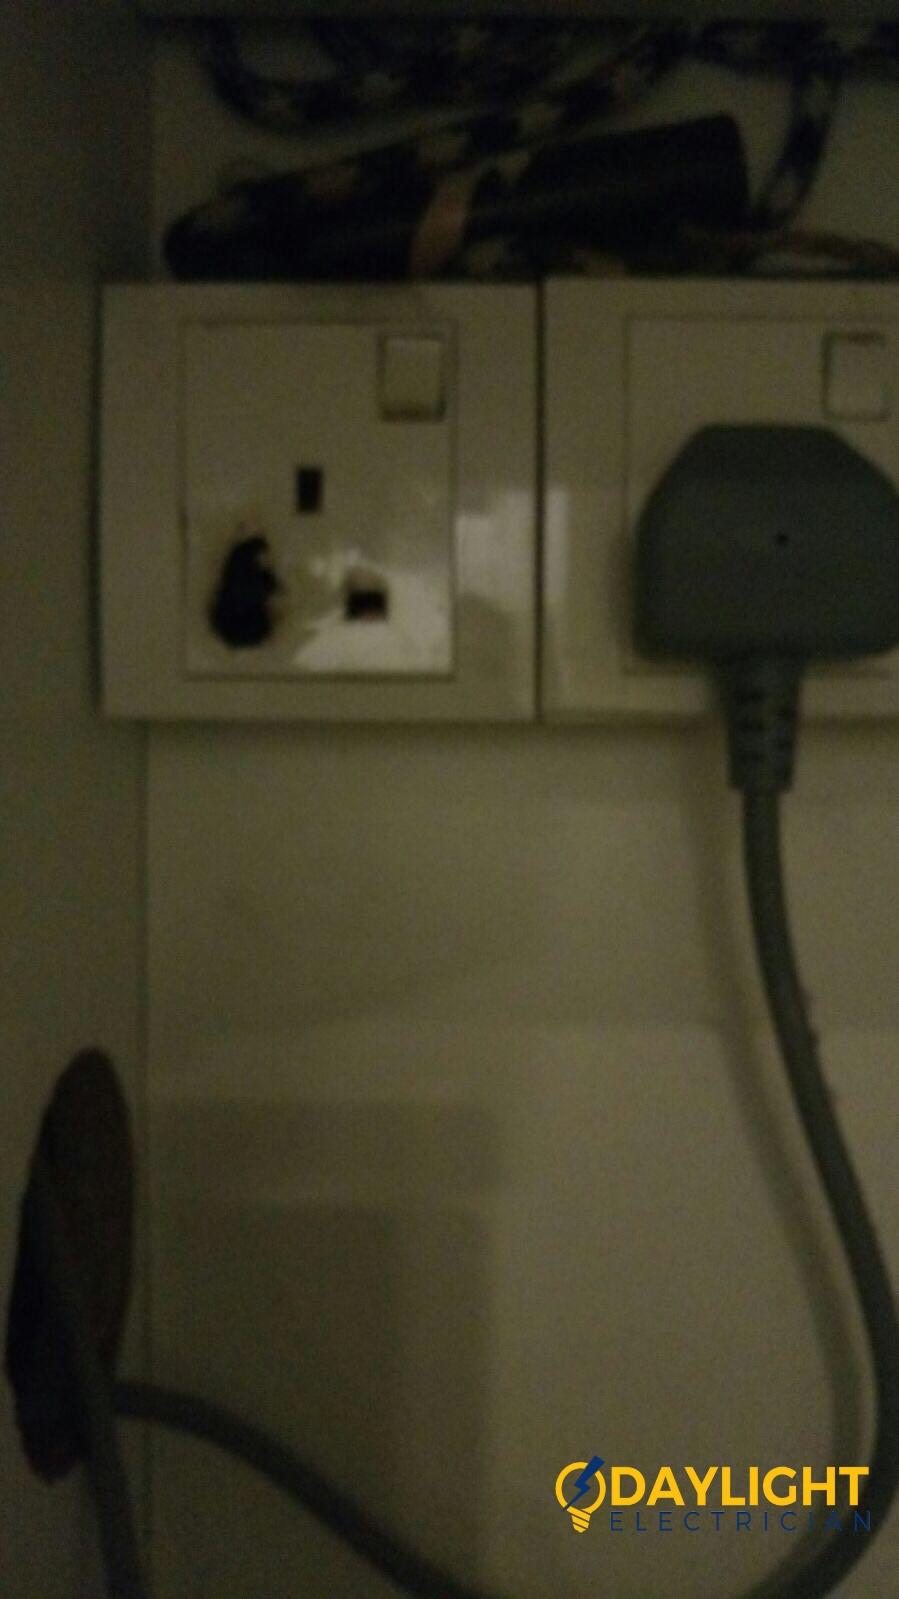 Replace-power-socket-overload-power-socket-burnt-electrician-singapore-landed-west-coast-faber-drive-1 (2)_wm